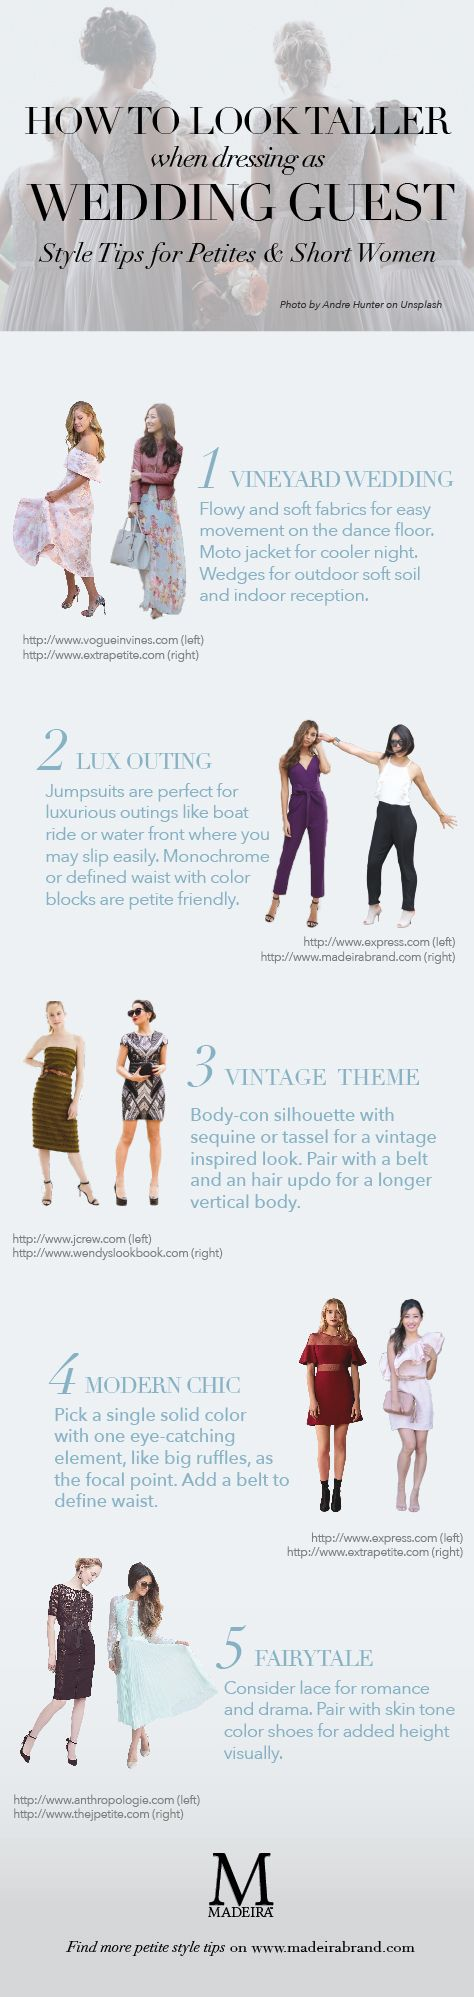 Fall is high season for wedding. If you are going to one or more weddings, you do NOT want to miss these tips and inspirations from our favorite petite fashion bloggers (J Petite, Extrapetite, Wendy's Lookbook and Vogue In Vines) who have mastered the art of dressing as wedding guests to popular theme/venue like vineyard, waterfront/boat ride, chic and modern locations (e.g. hotels, museums, etc.) and even a vintage style ambience.